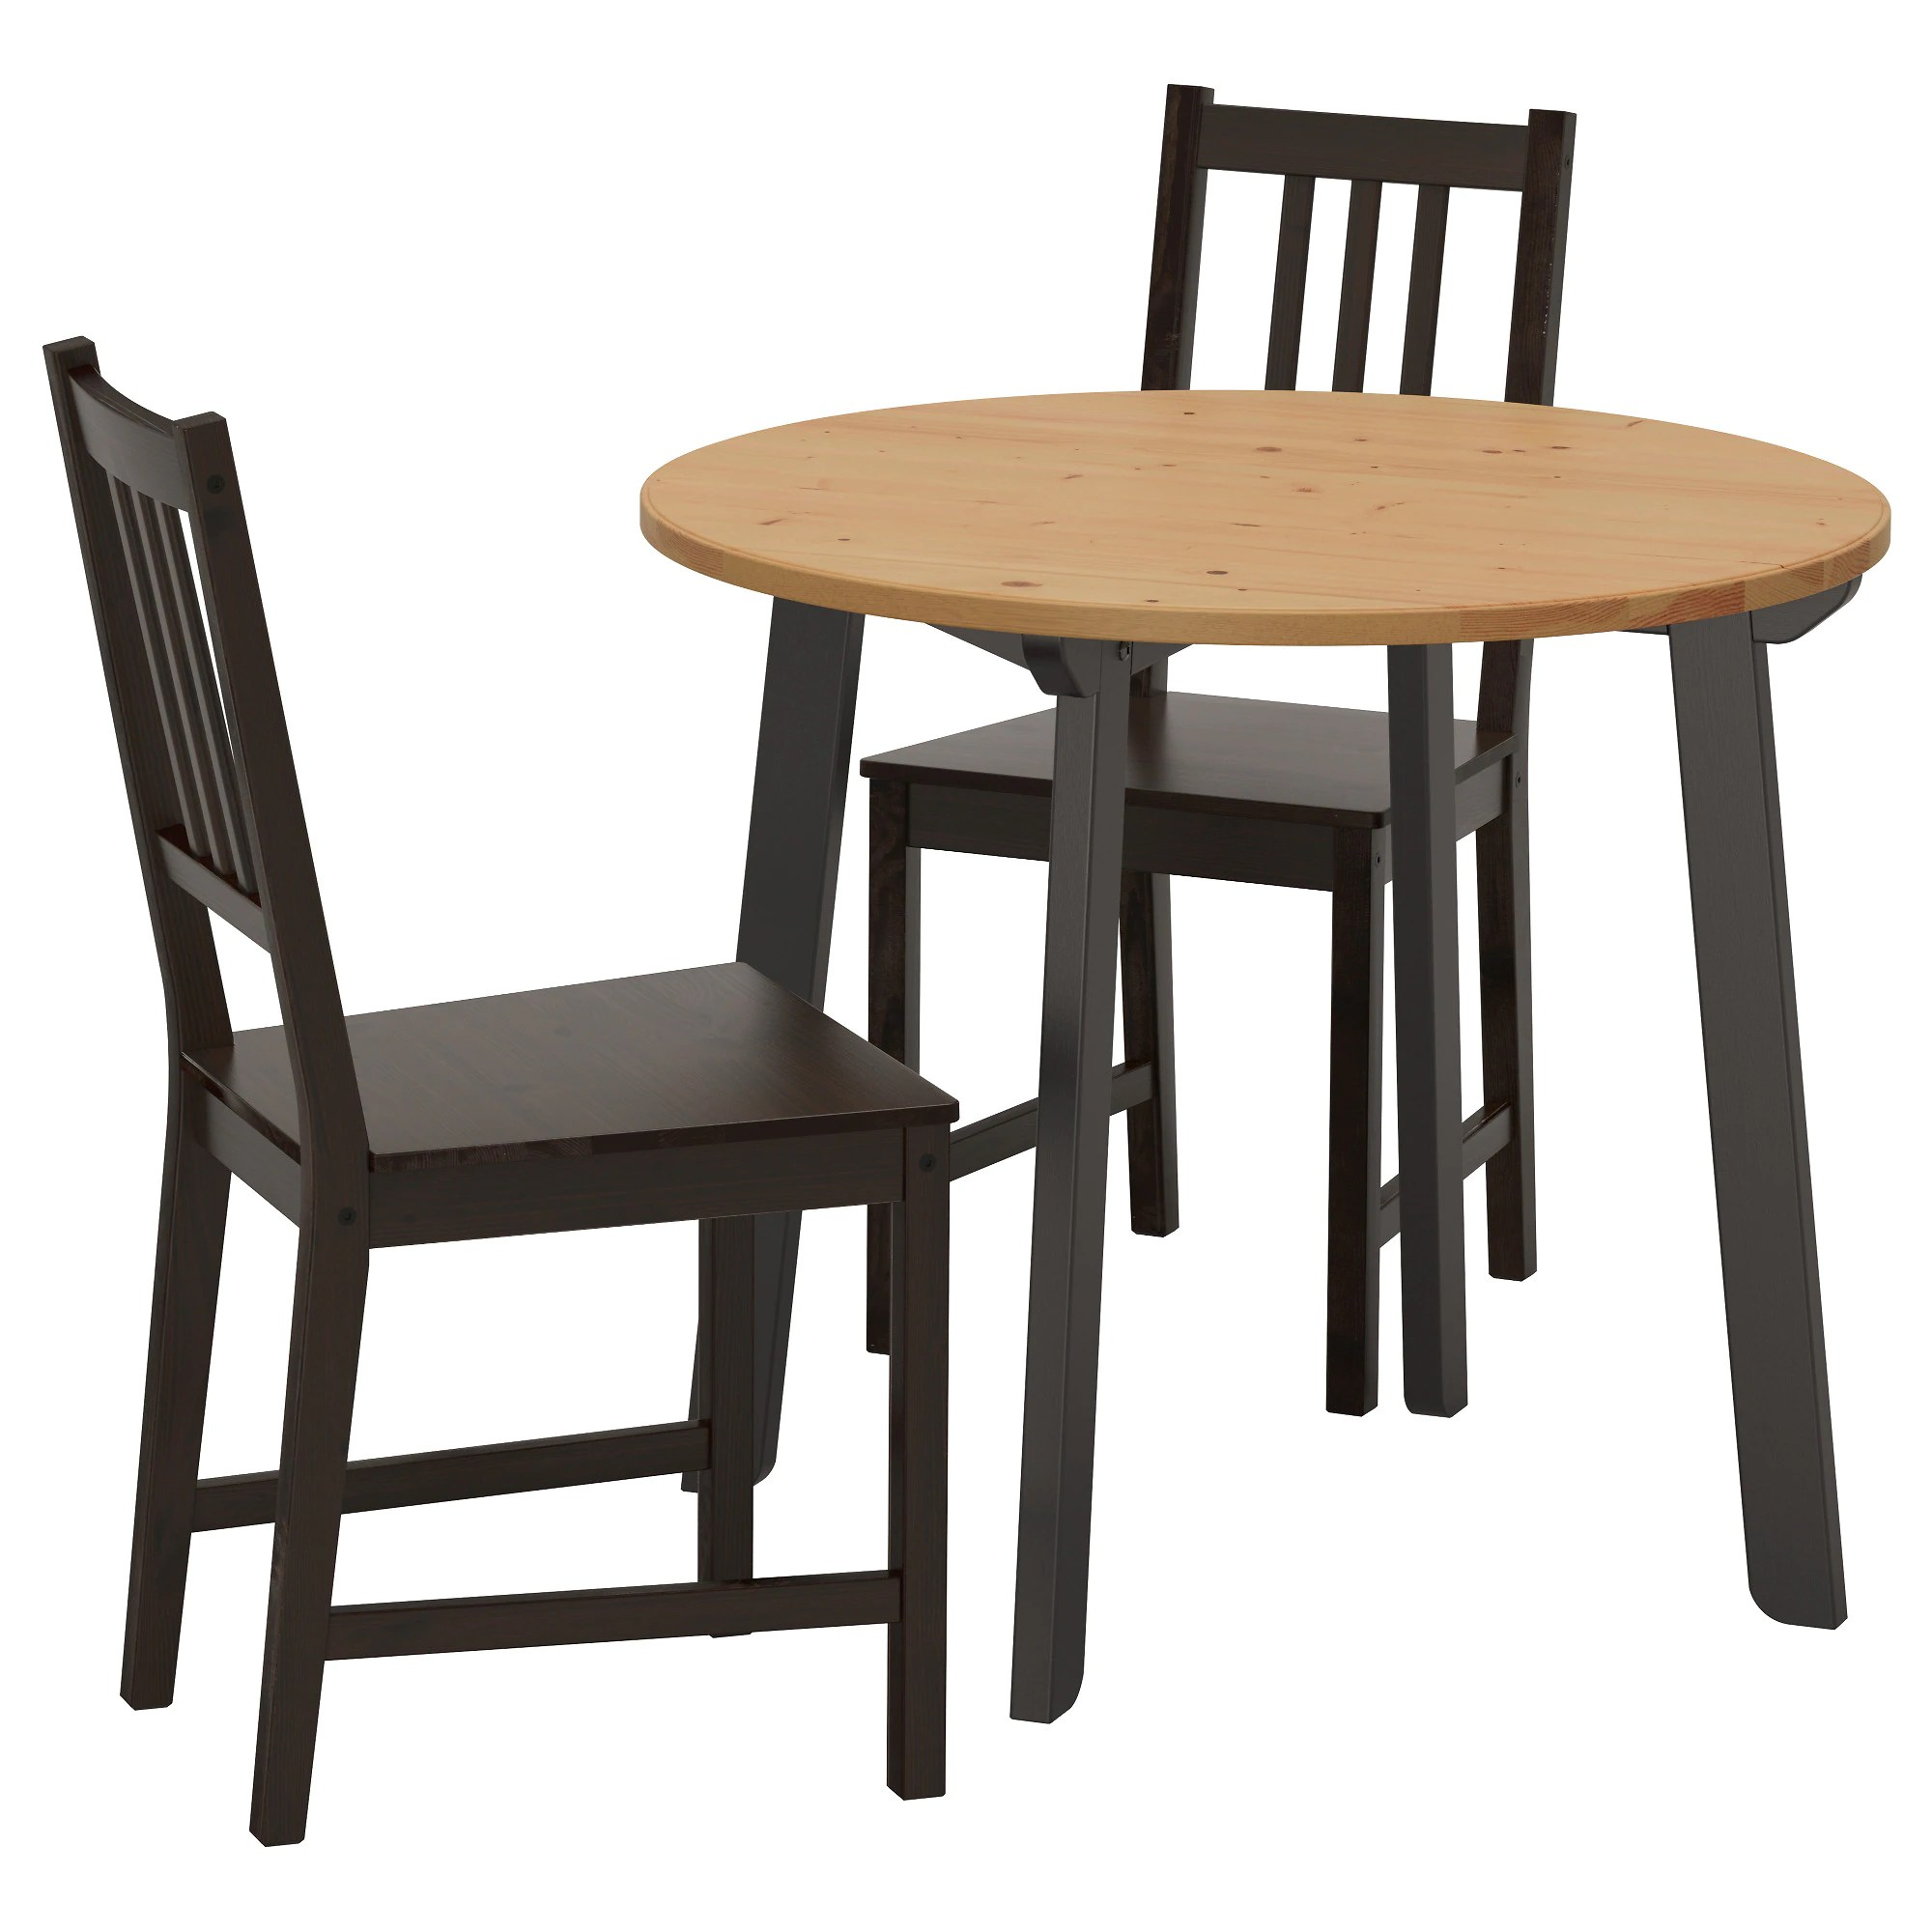 Table With Chairs Table And 2 Chairs Gamlared Stefan Light Antique Stain Brown Black